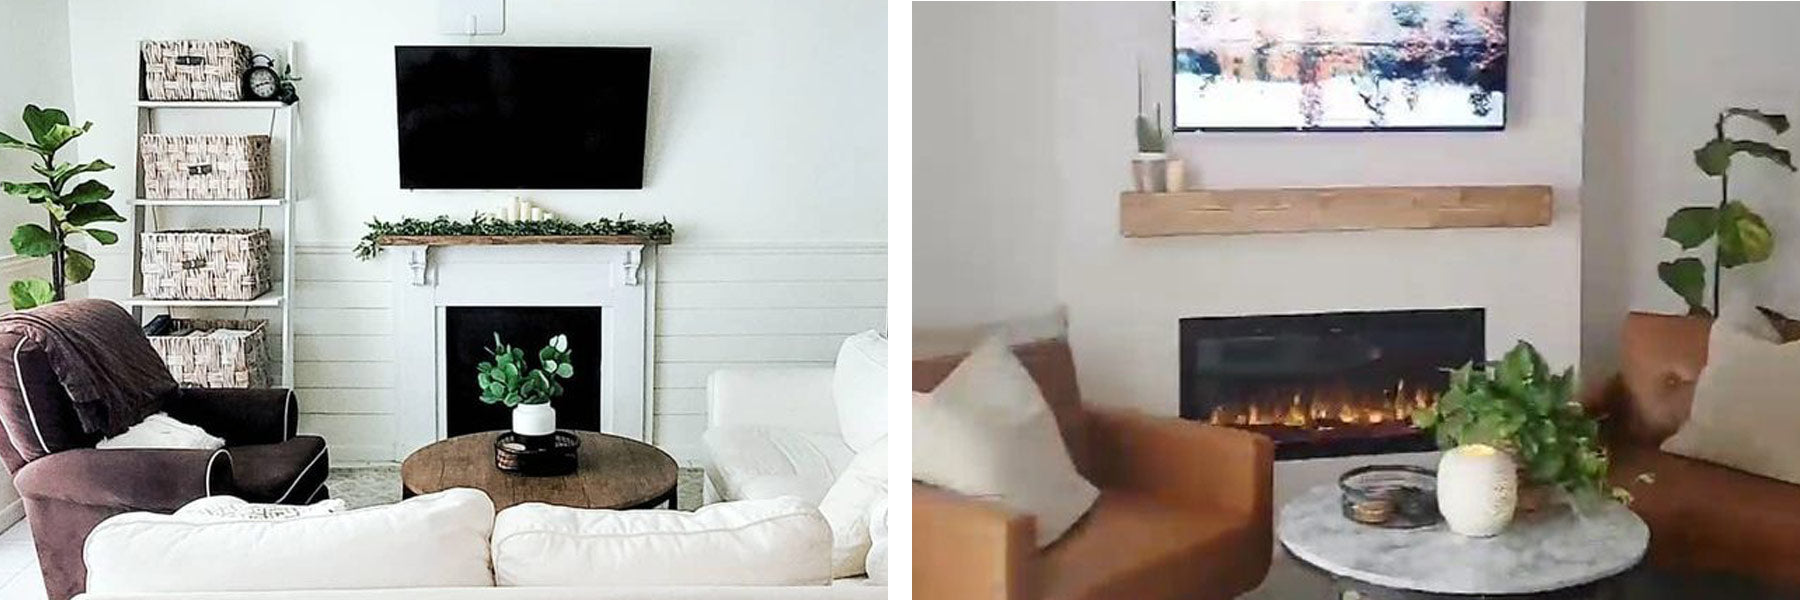 SimpleMadePretty DIY fireplace transformation with Touchstone Sideline Elite 42 Electric Fireplace